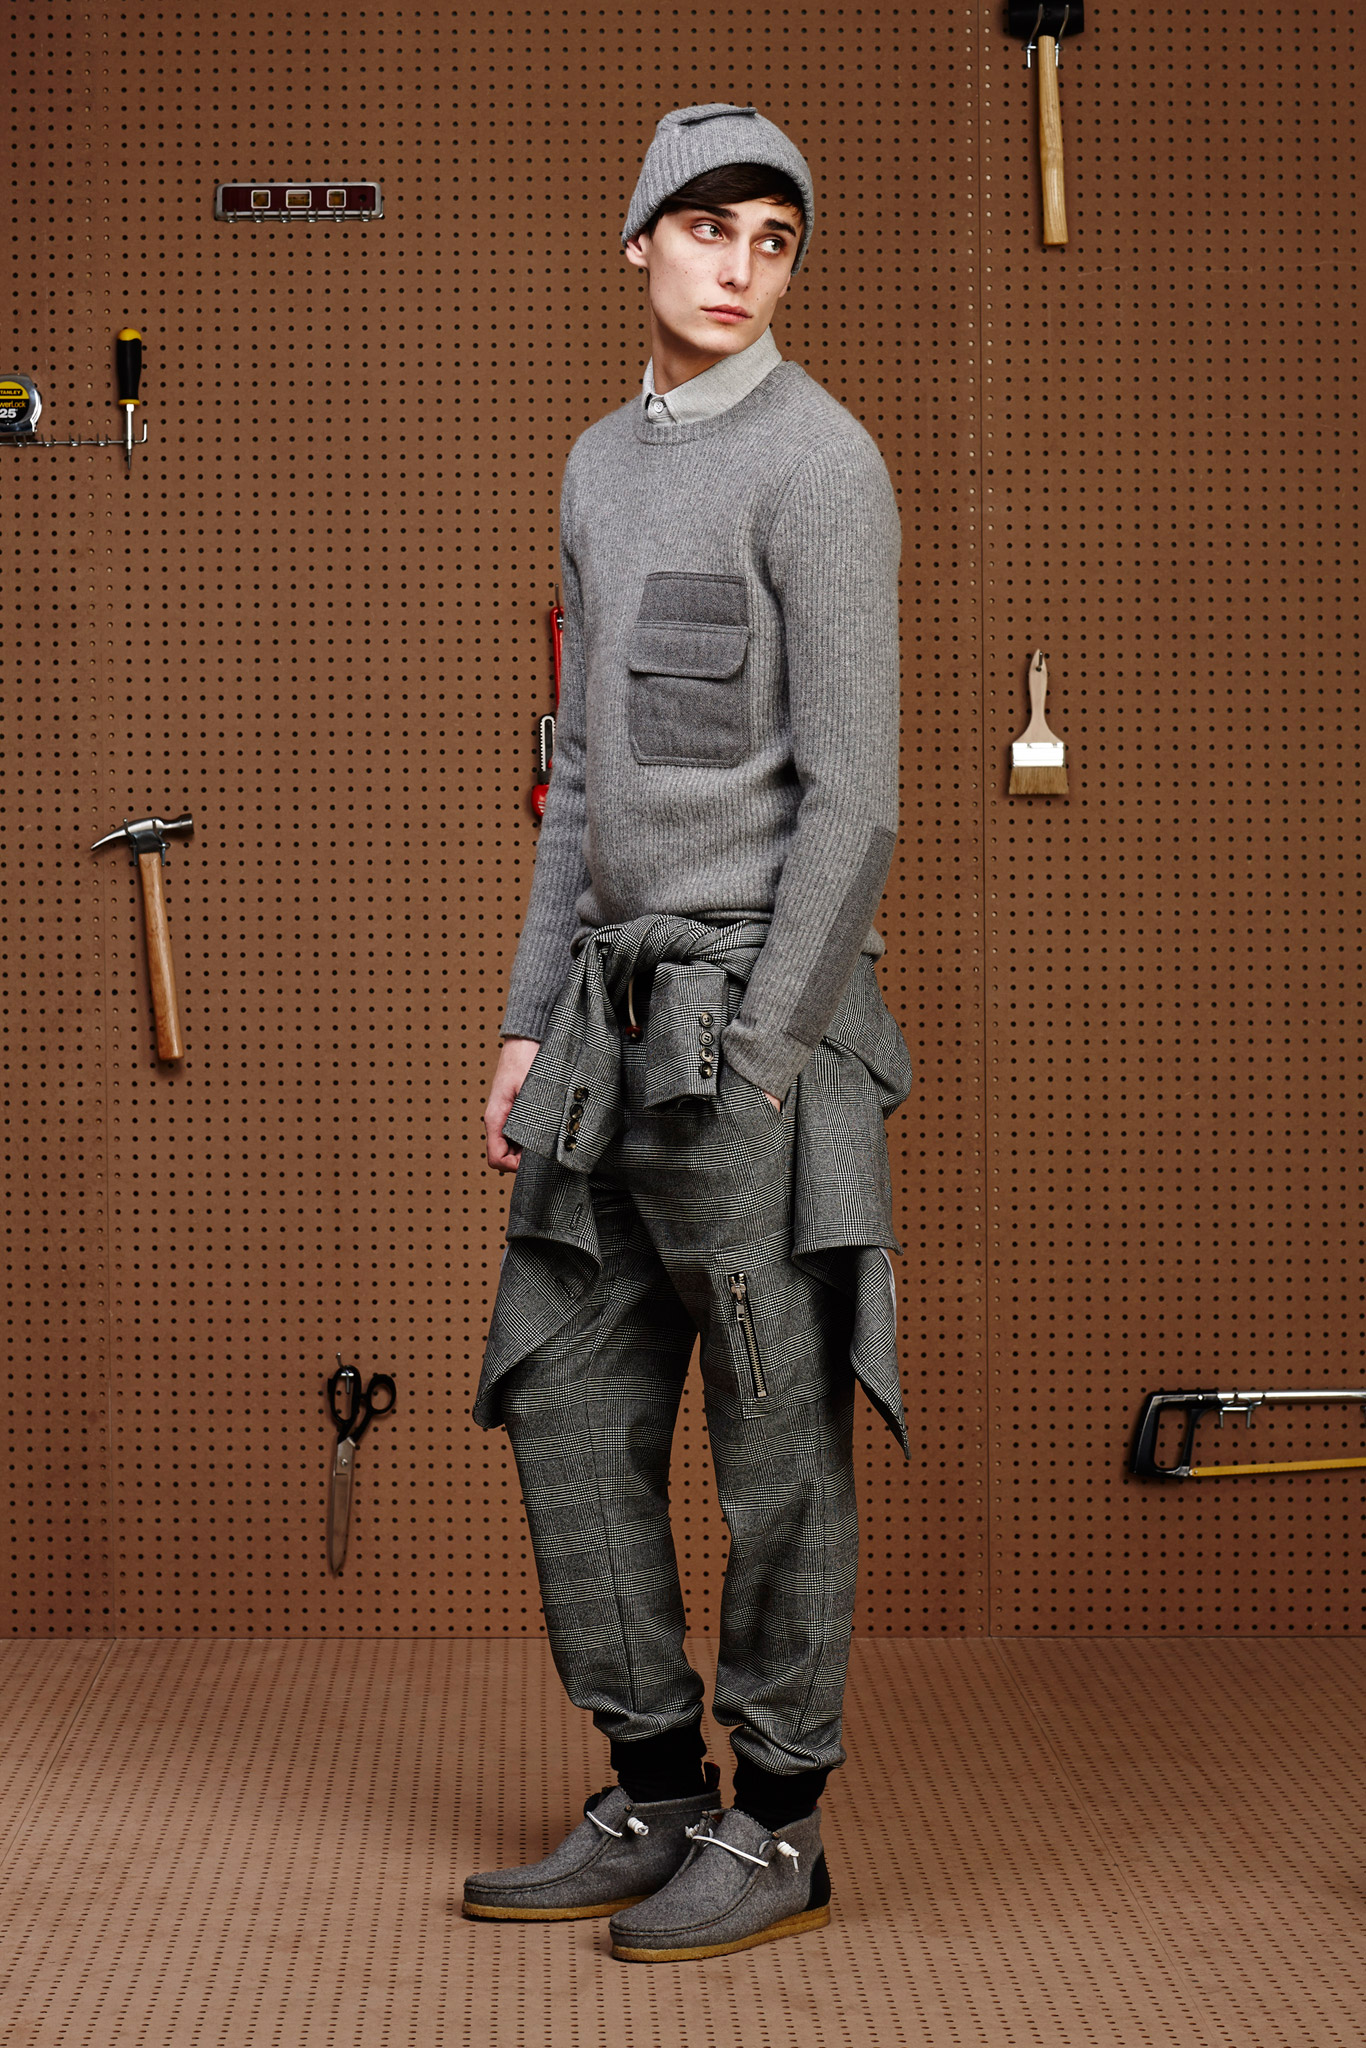 Band of Outsiders Fall/Winter 2015 Collection